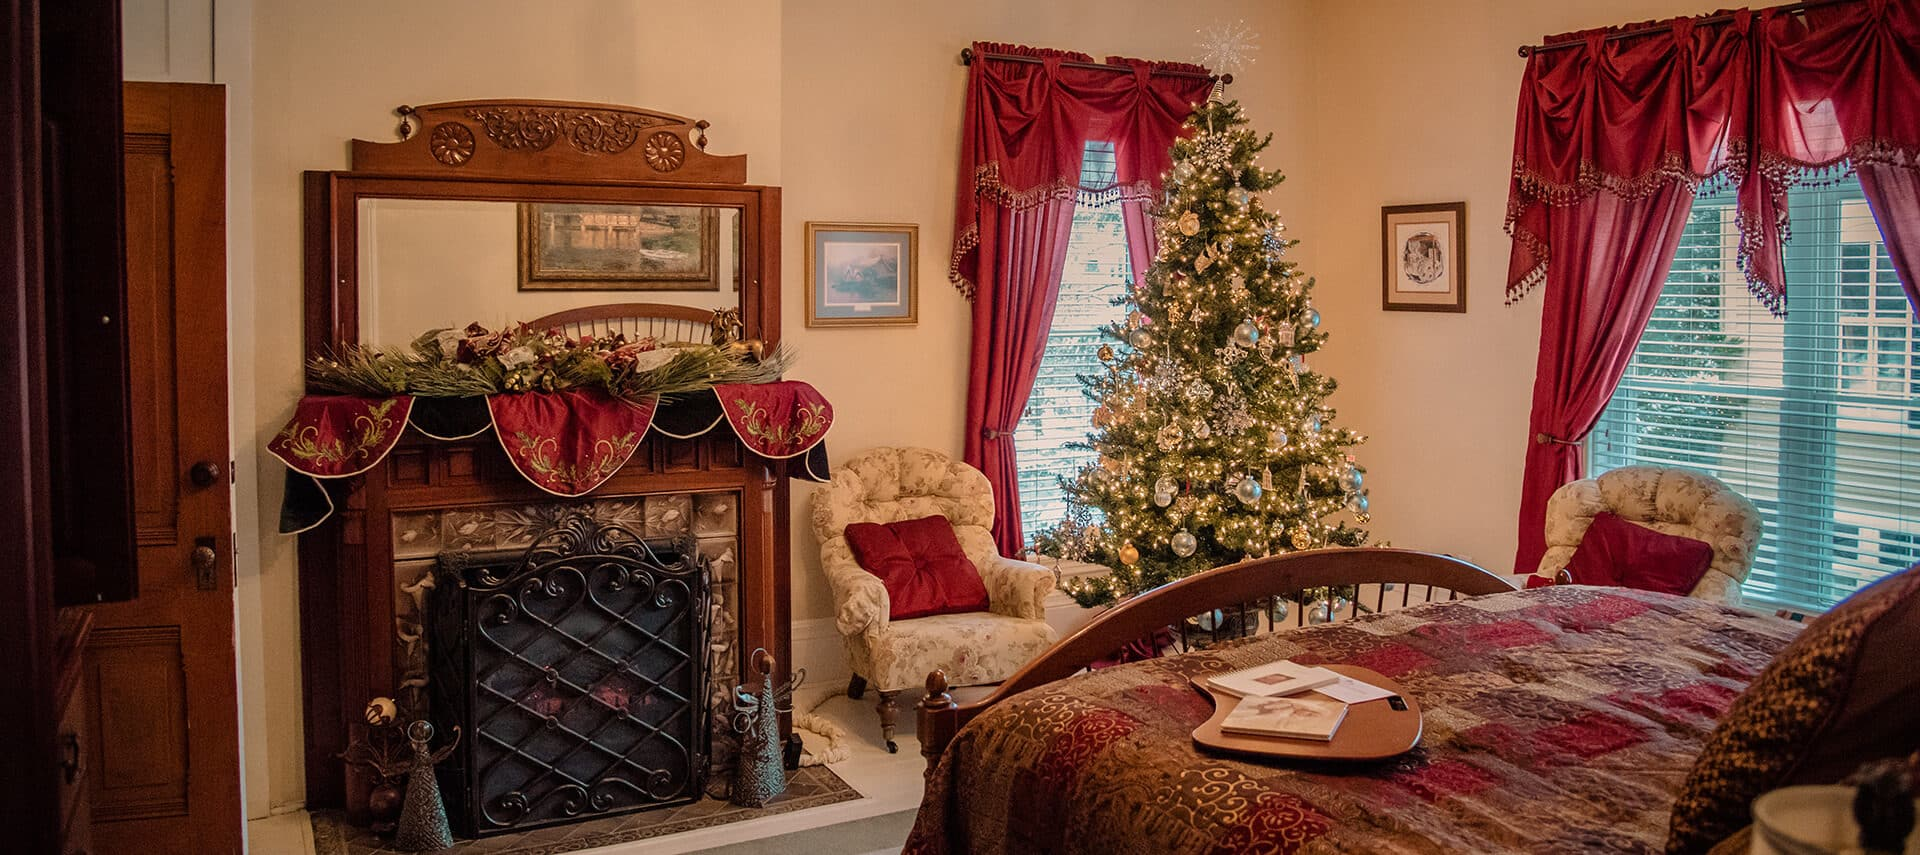 decorated mantel and bed with burgundy decor and Christmas tree